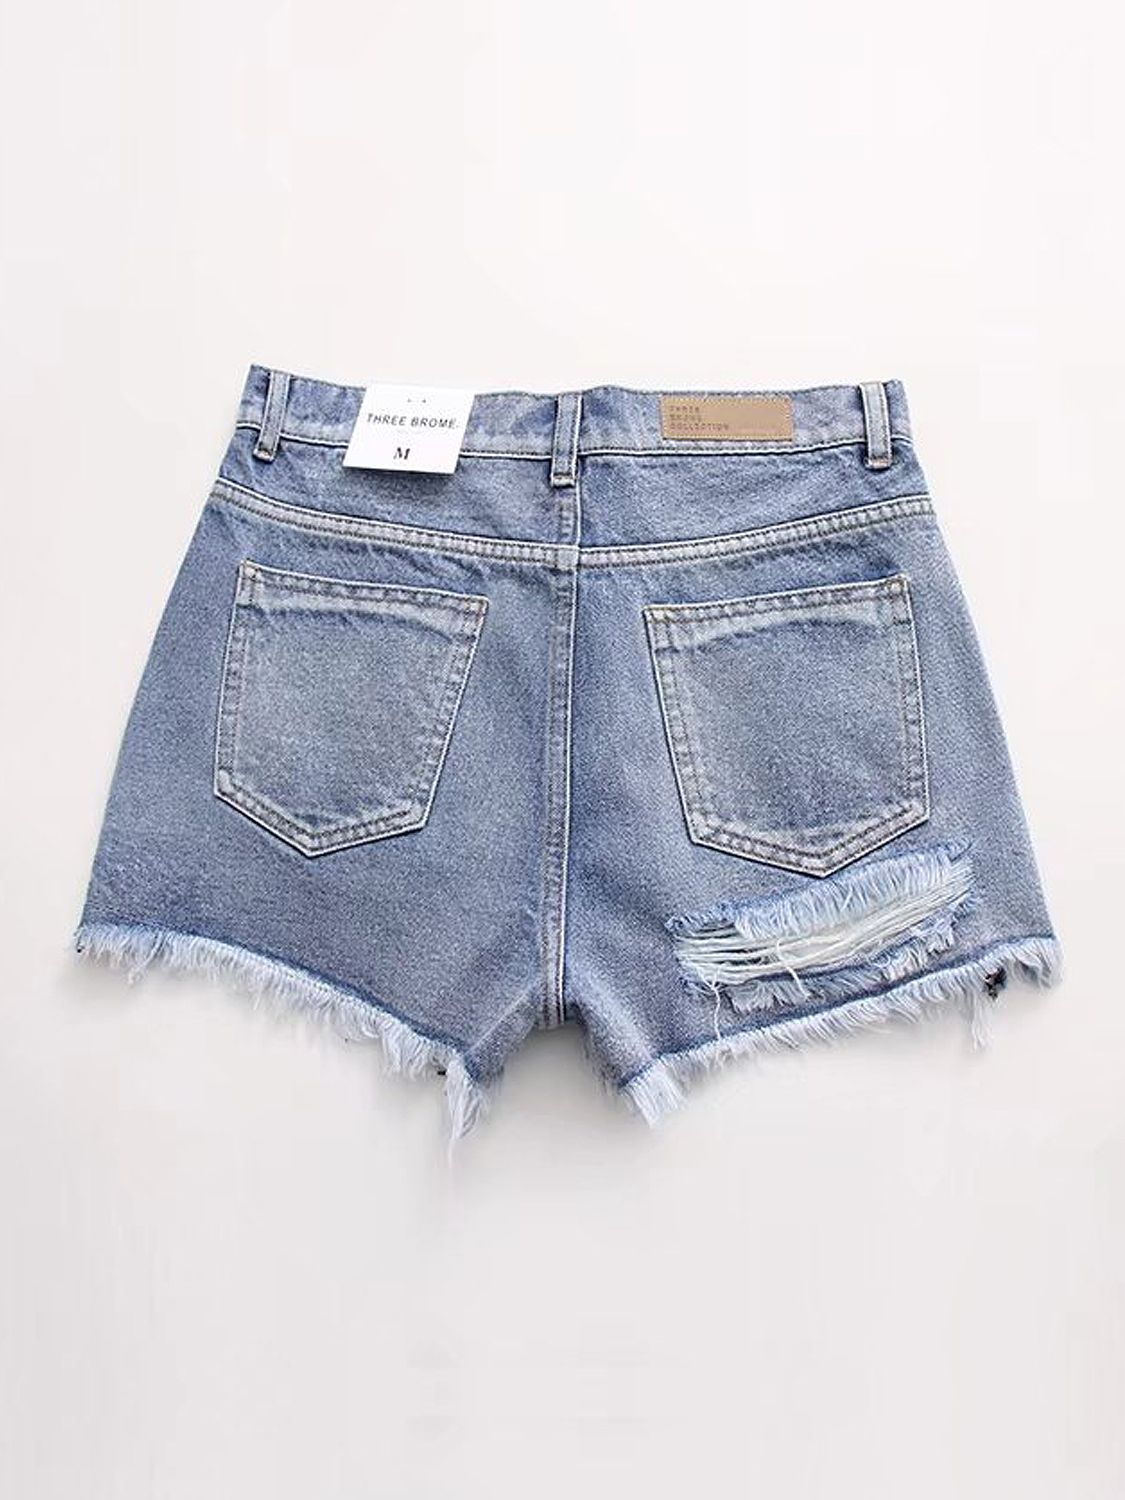 70308760106409 Blue High Waist Ripped Raw Hem Denim Shorts Blue, Sexy, Latest Fashion For  Women